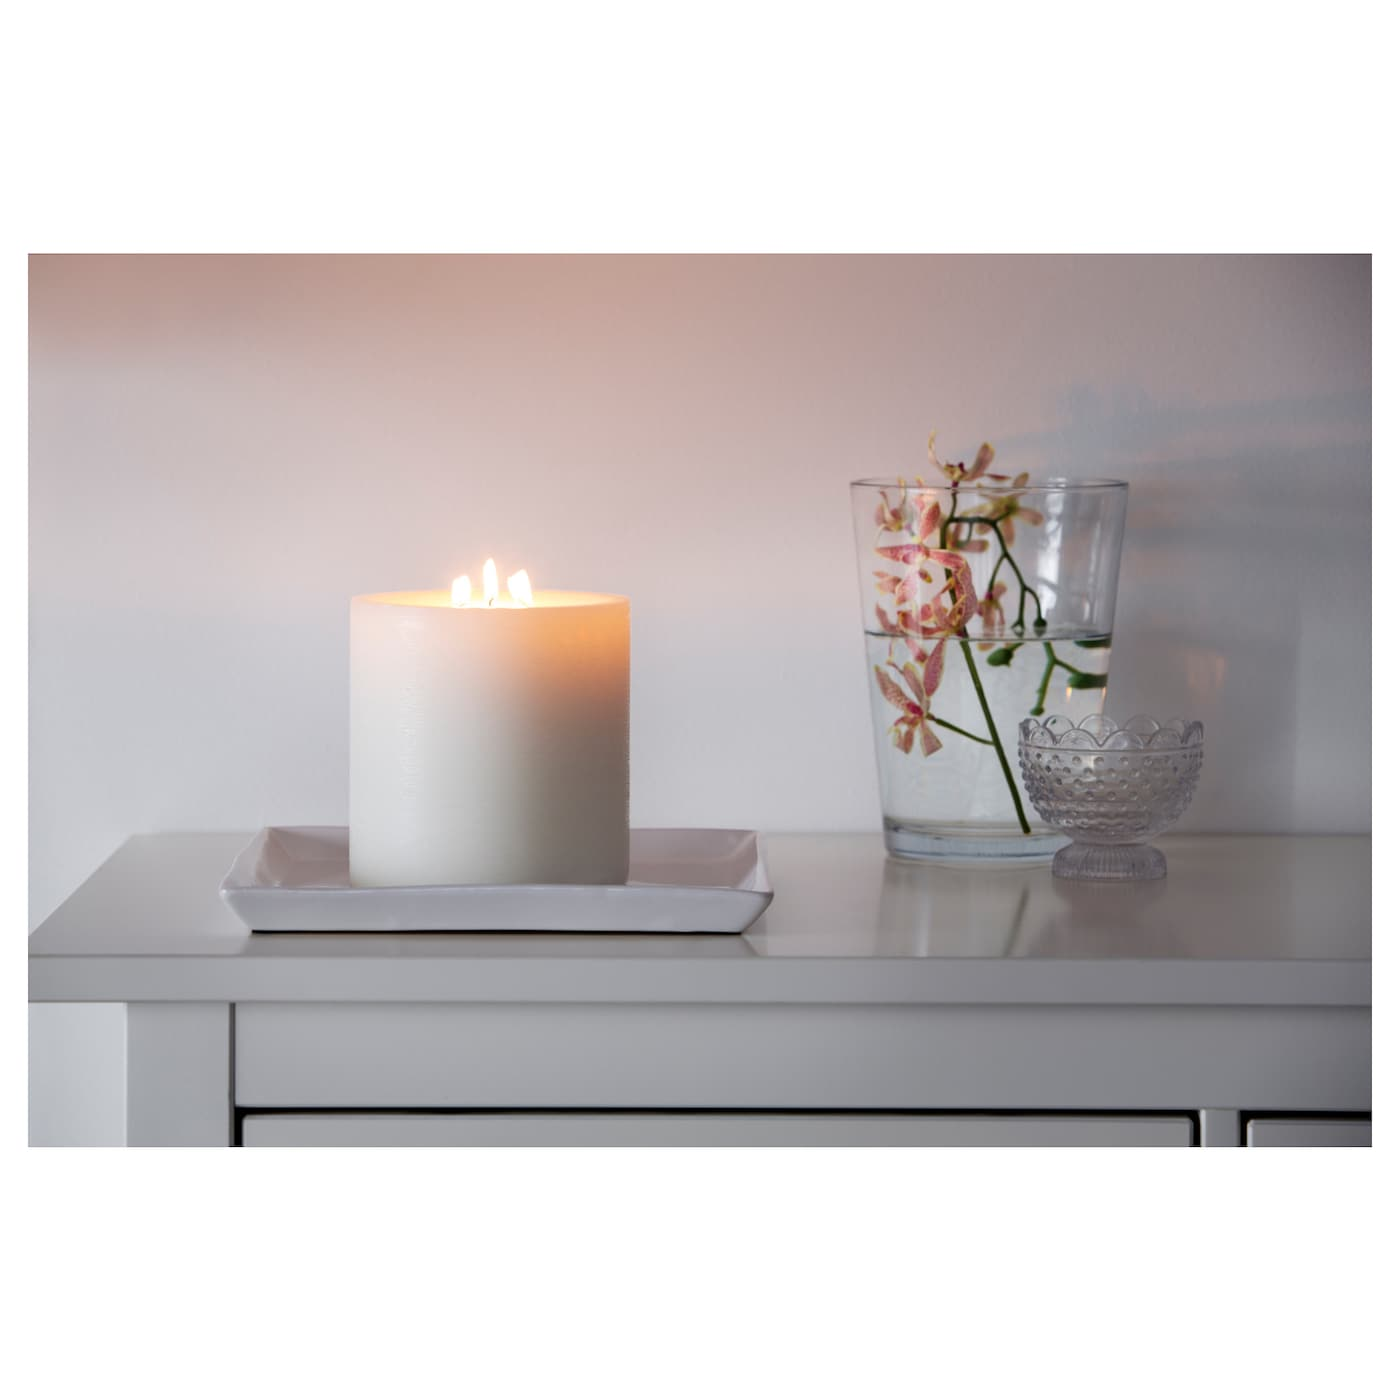 IKEA VILLIG scented candle with 3 wicks